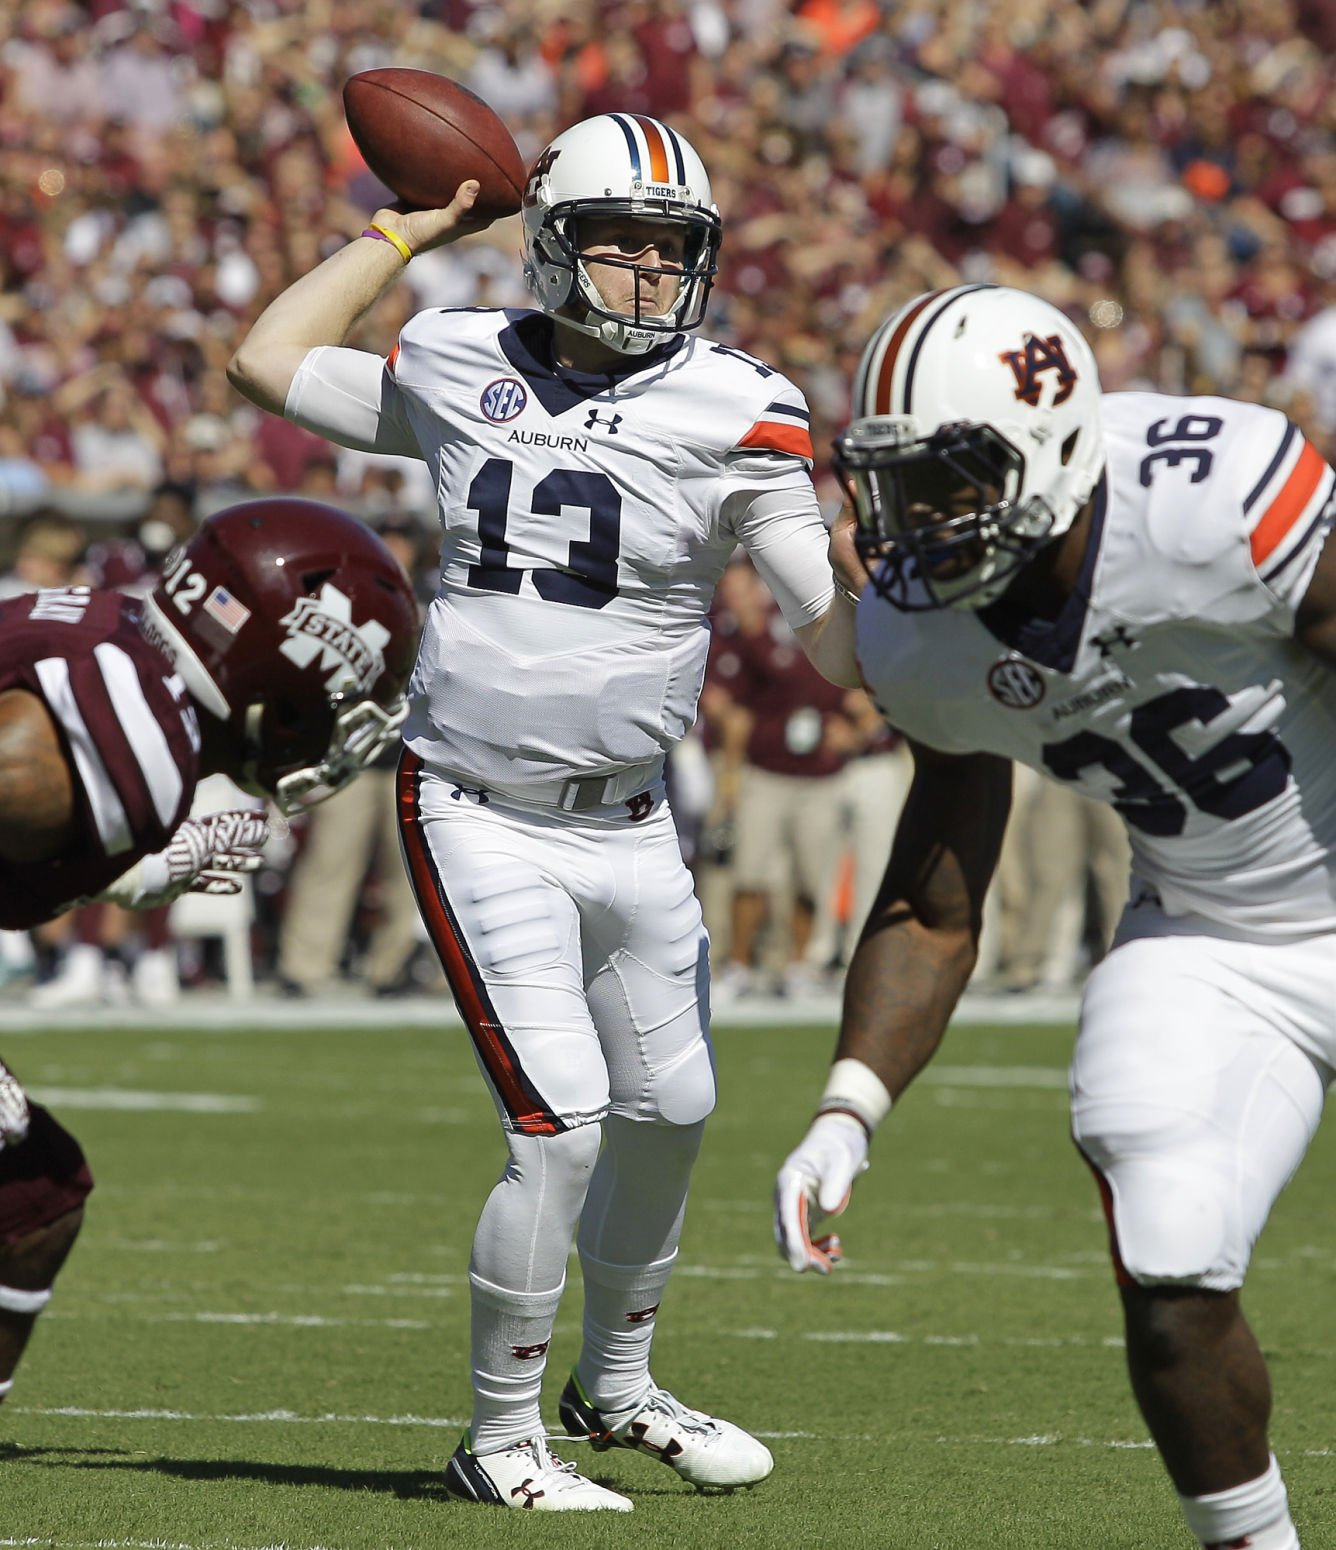 Eagles stymied in 41-7 loss at Auburn